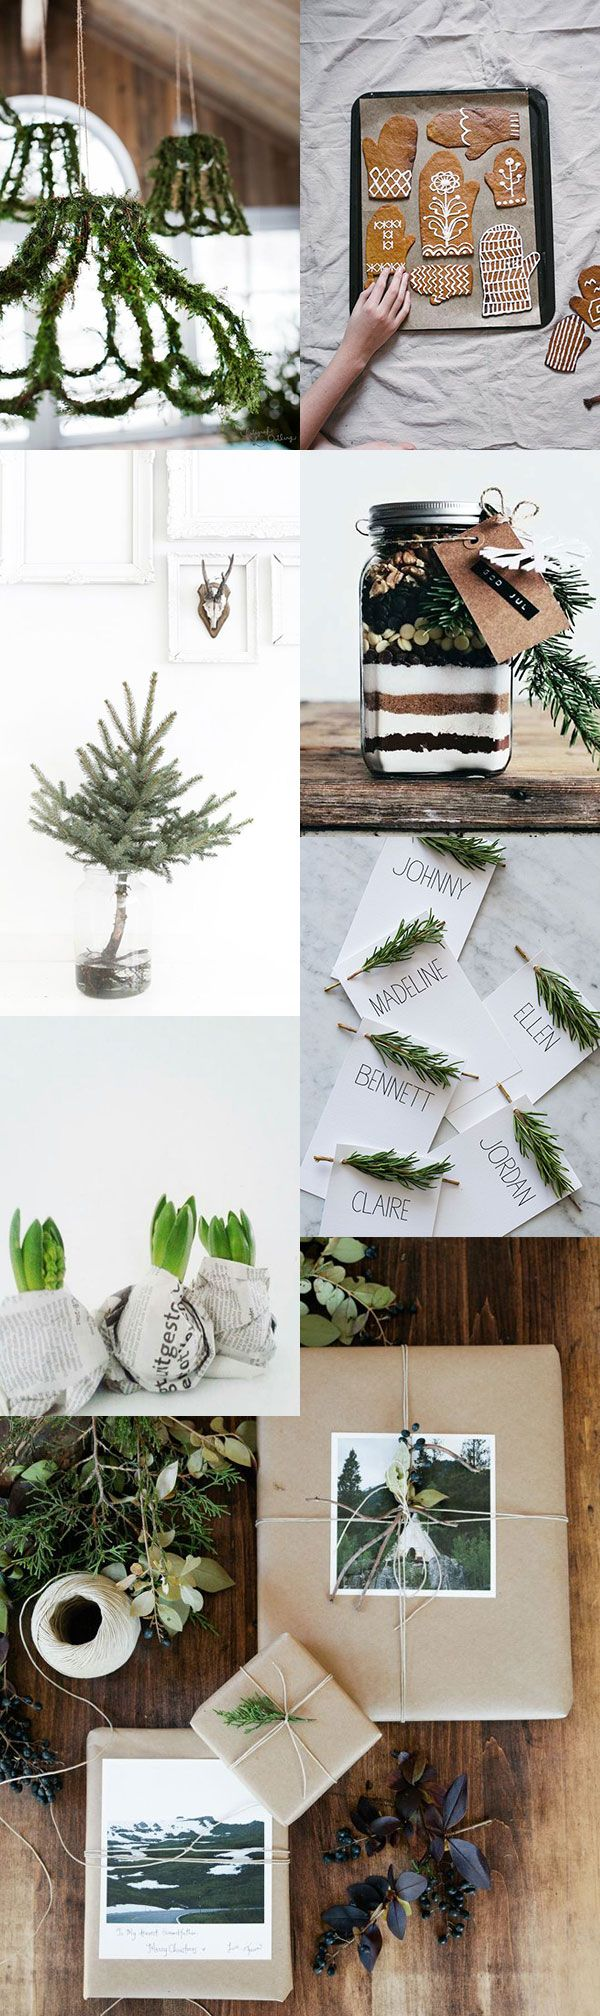 loving the white and greenery. so beautifully simple yet festive